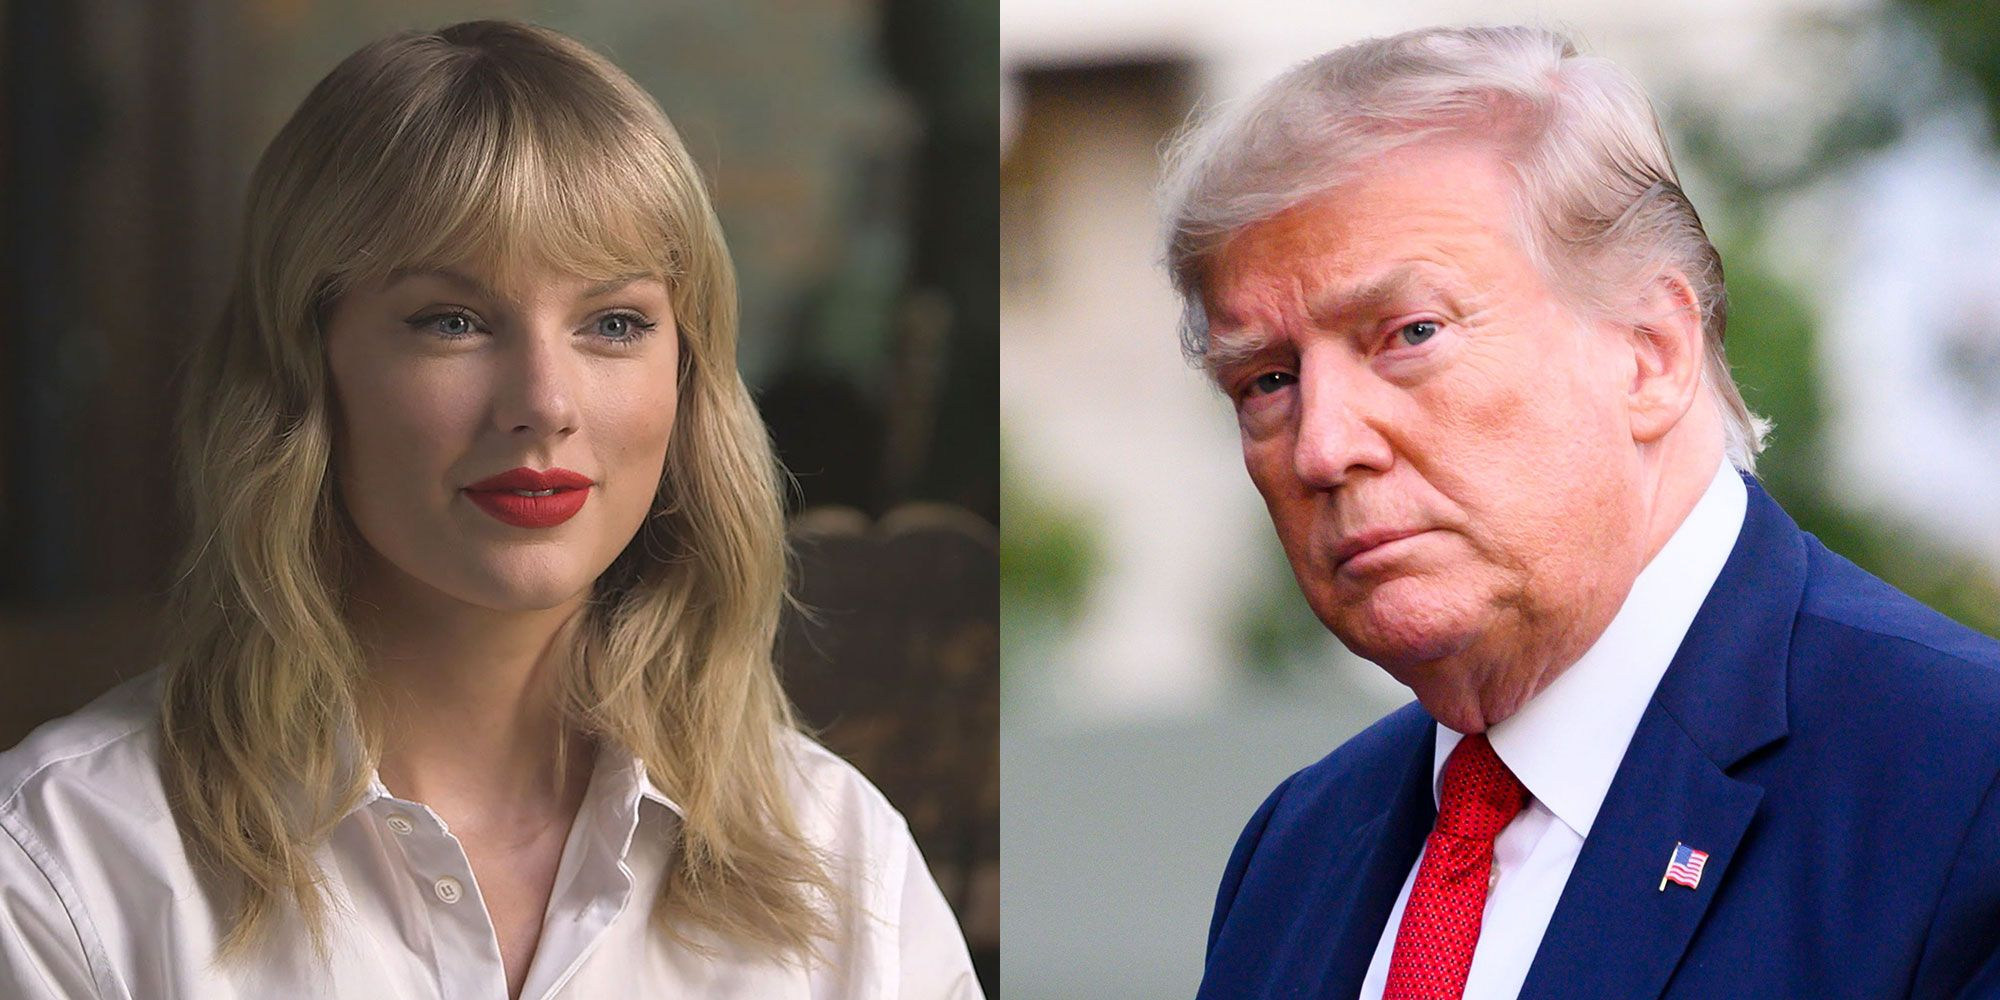 Taylor Swift Speaks Out Against Donald Trump: 'I Really Think That He Thinks This Is an Autocracy'